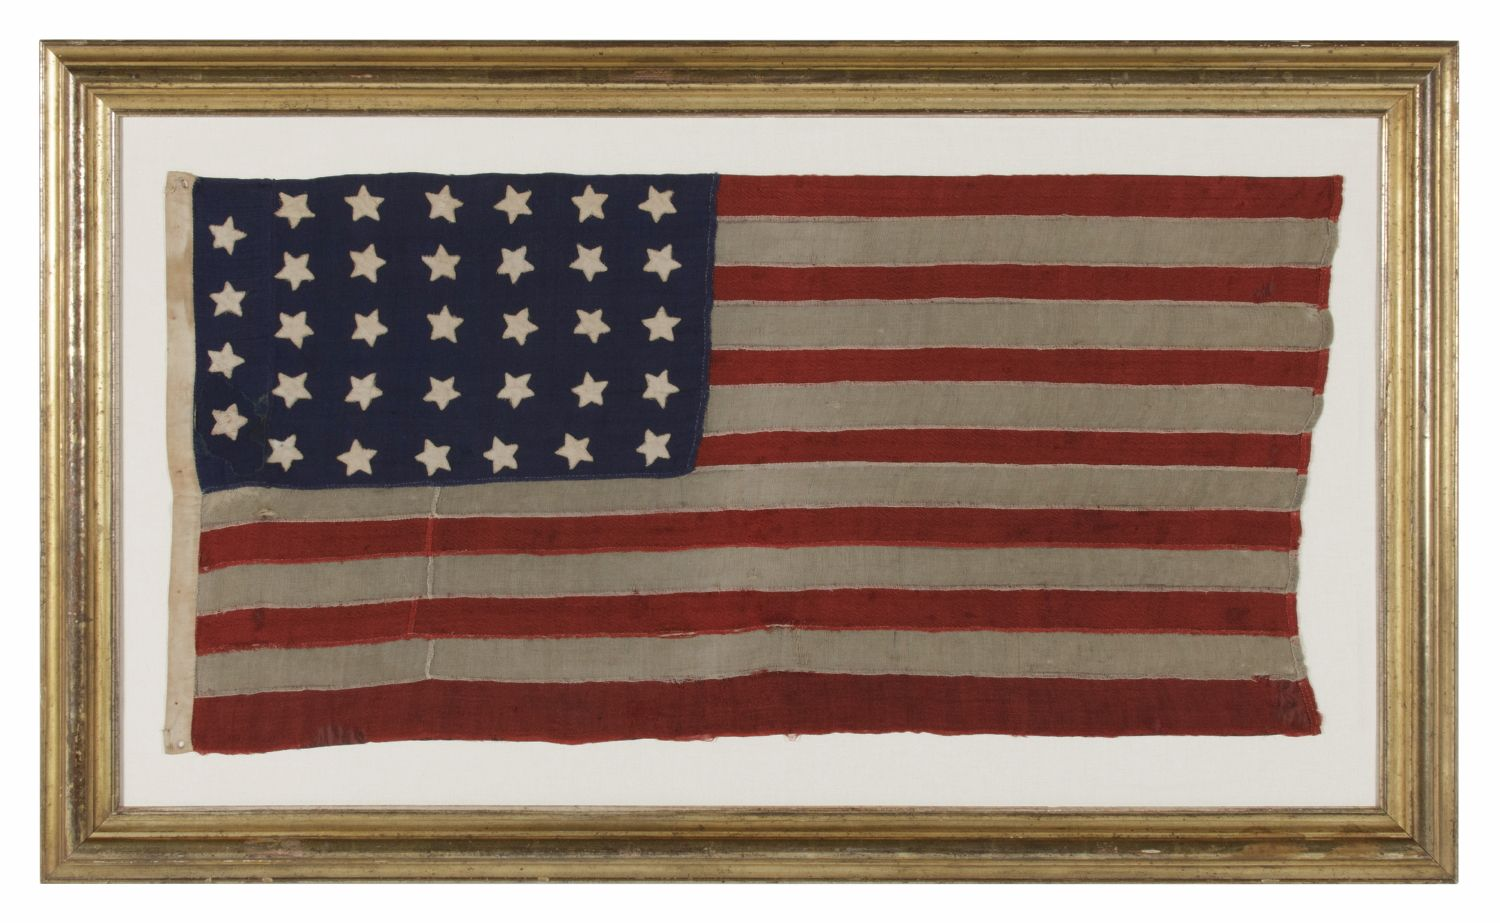 34 Stars On A Homemade And Entirely Hand Sewn Flag Of The Civil War Period The Smallest I Have Ever Encountered Am Civil War Flags American Antiques Civil War